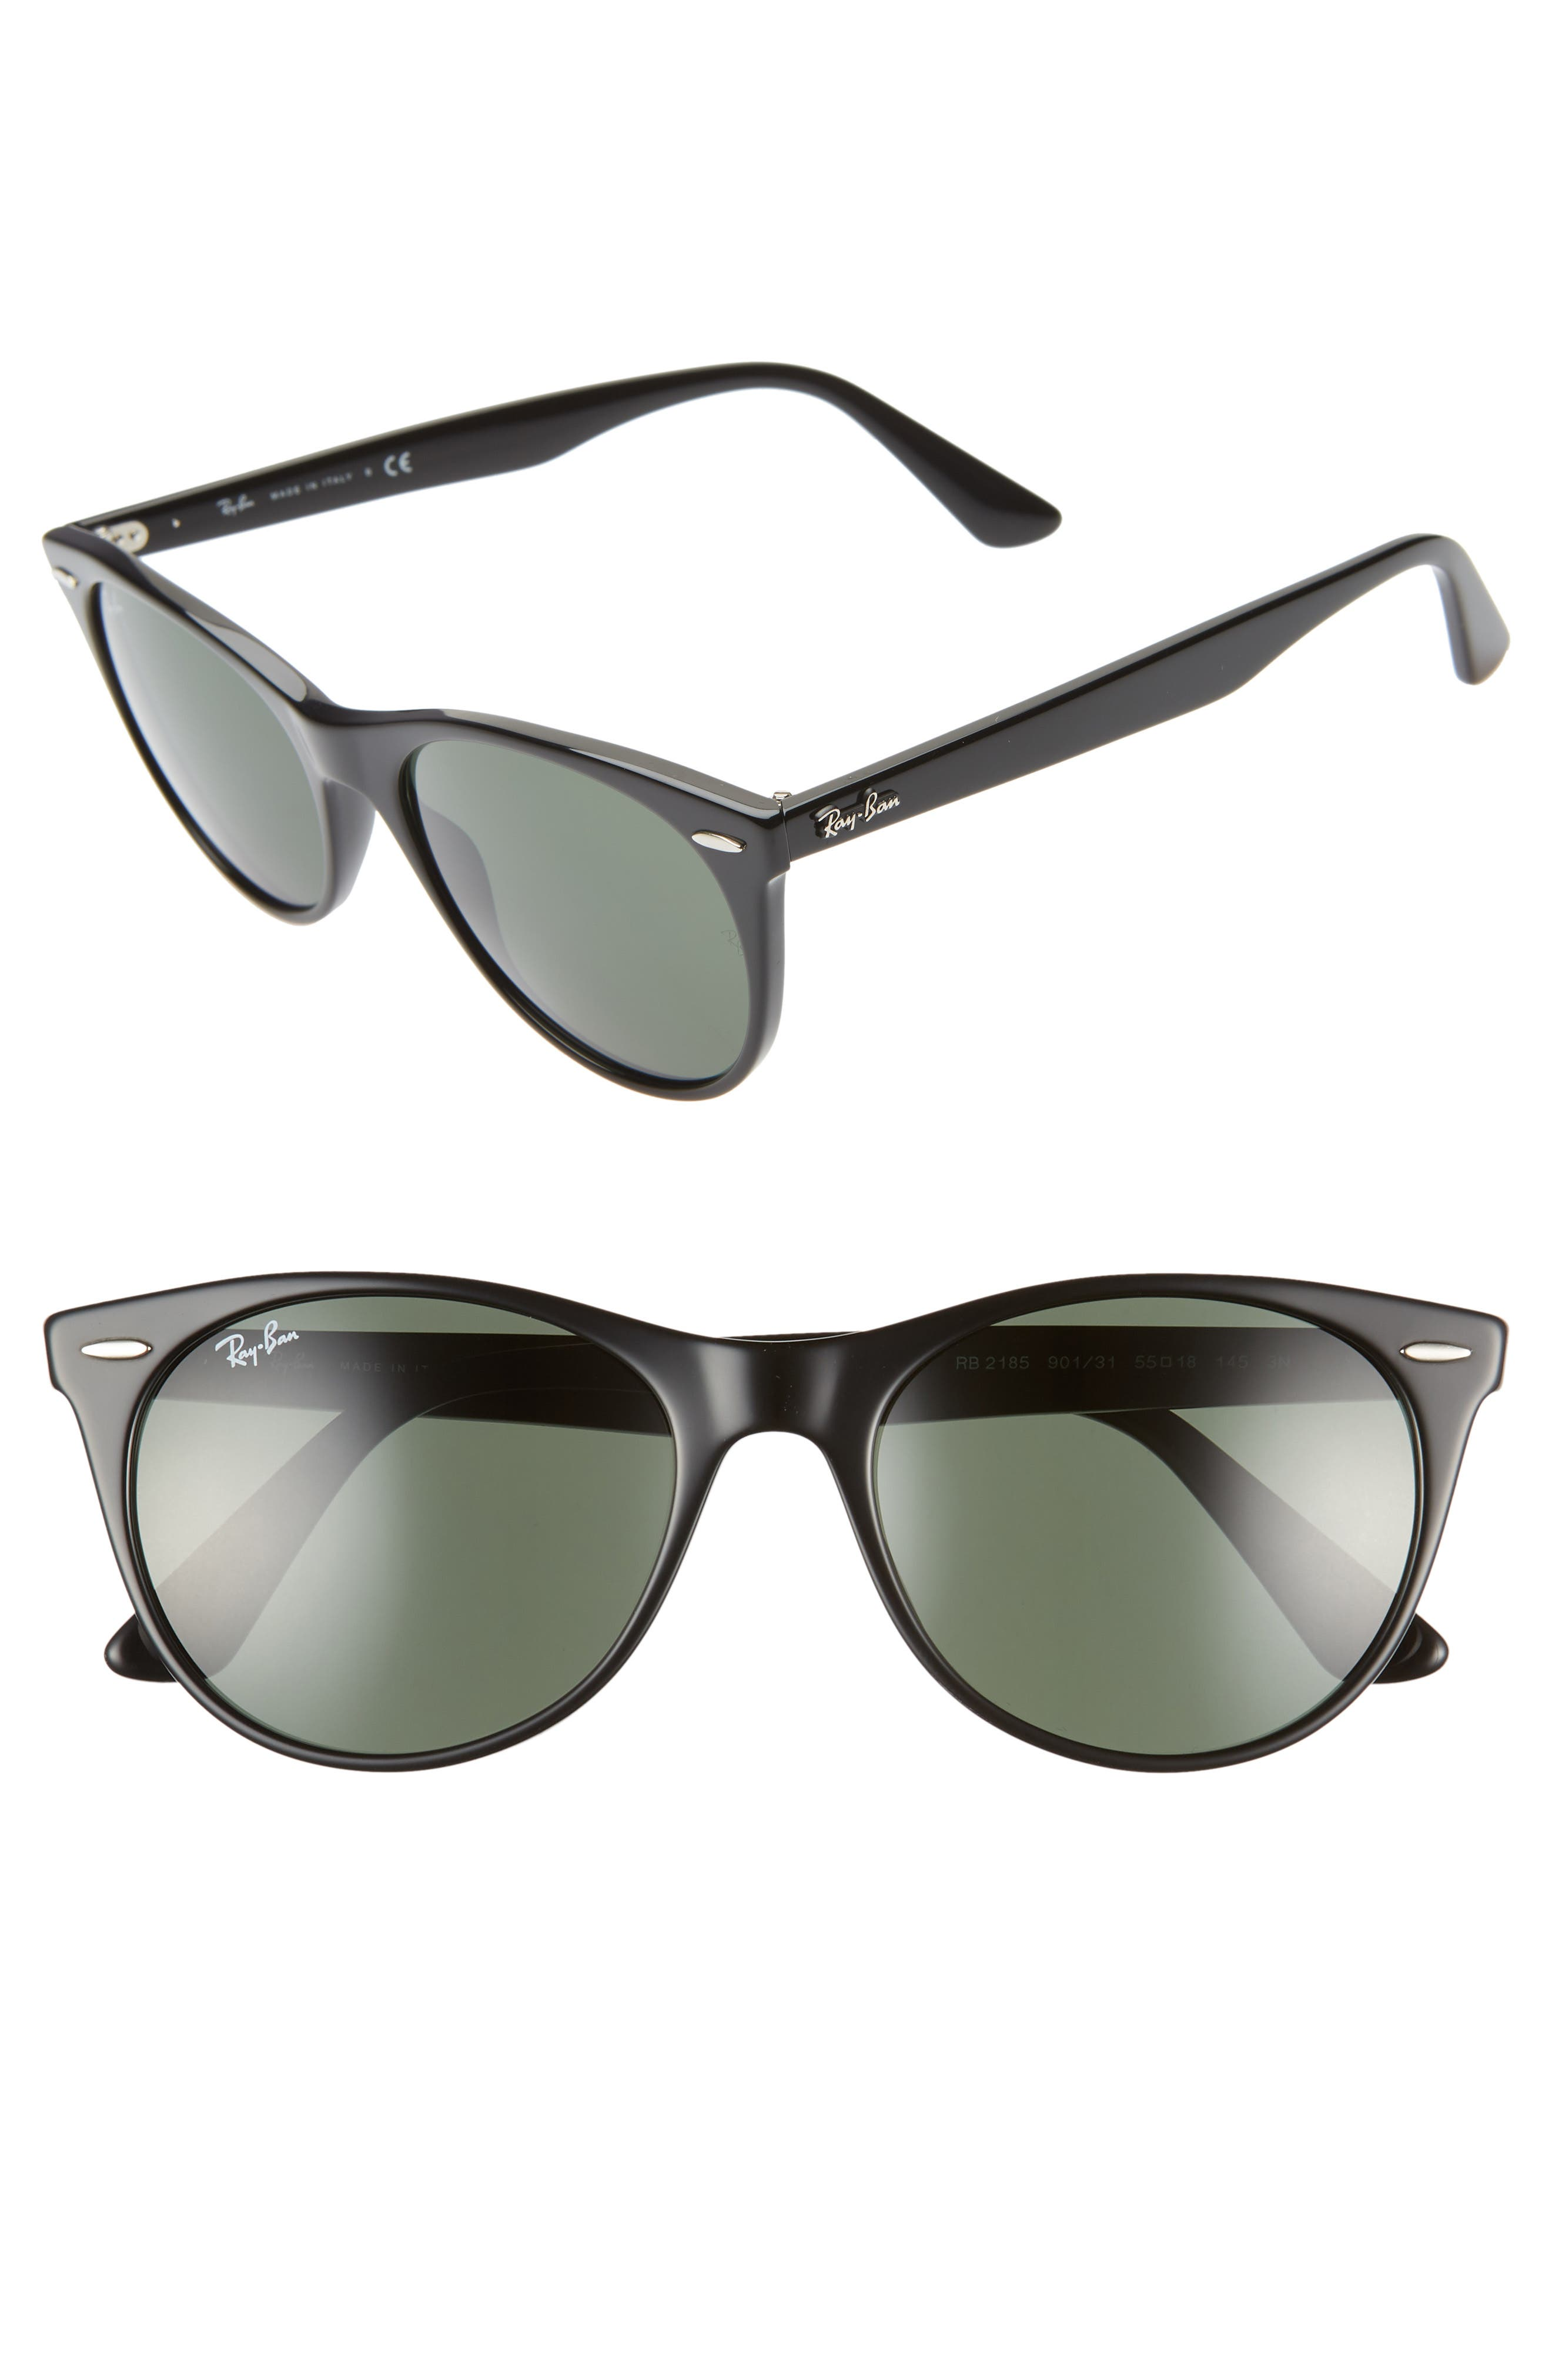 Ray-Ban 55Mm Round Wayfarer Sunglasses - Black Solid